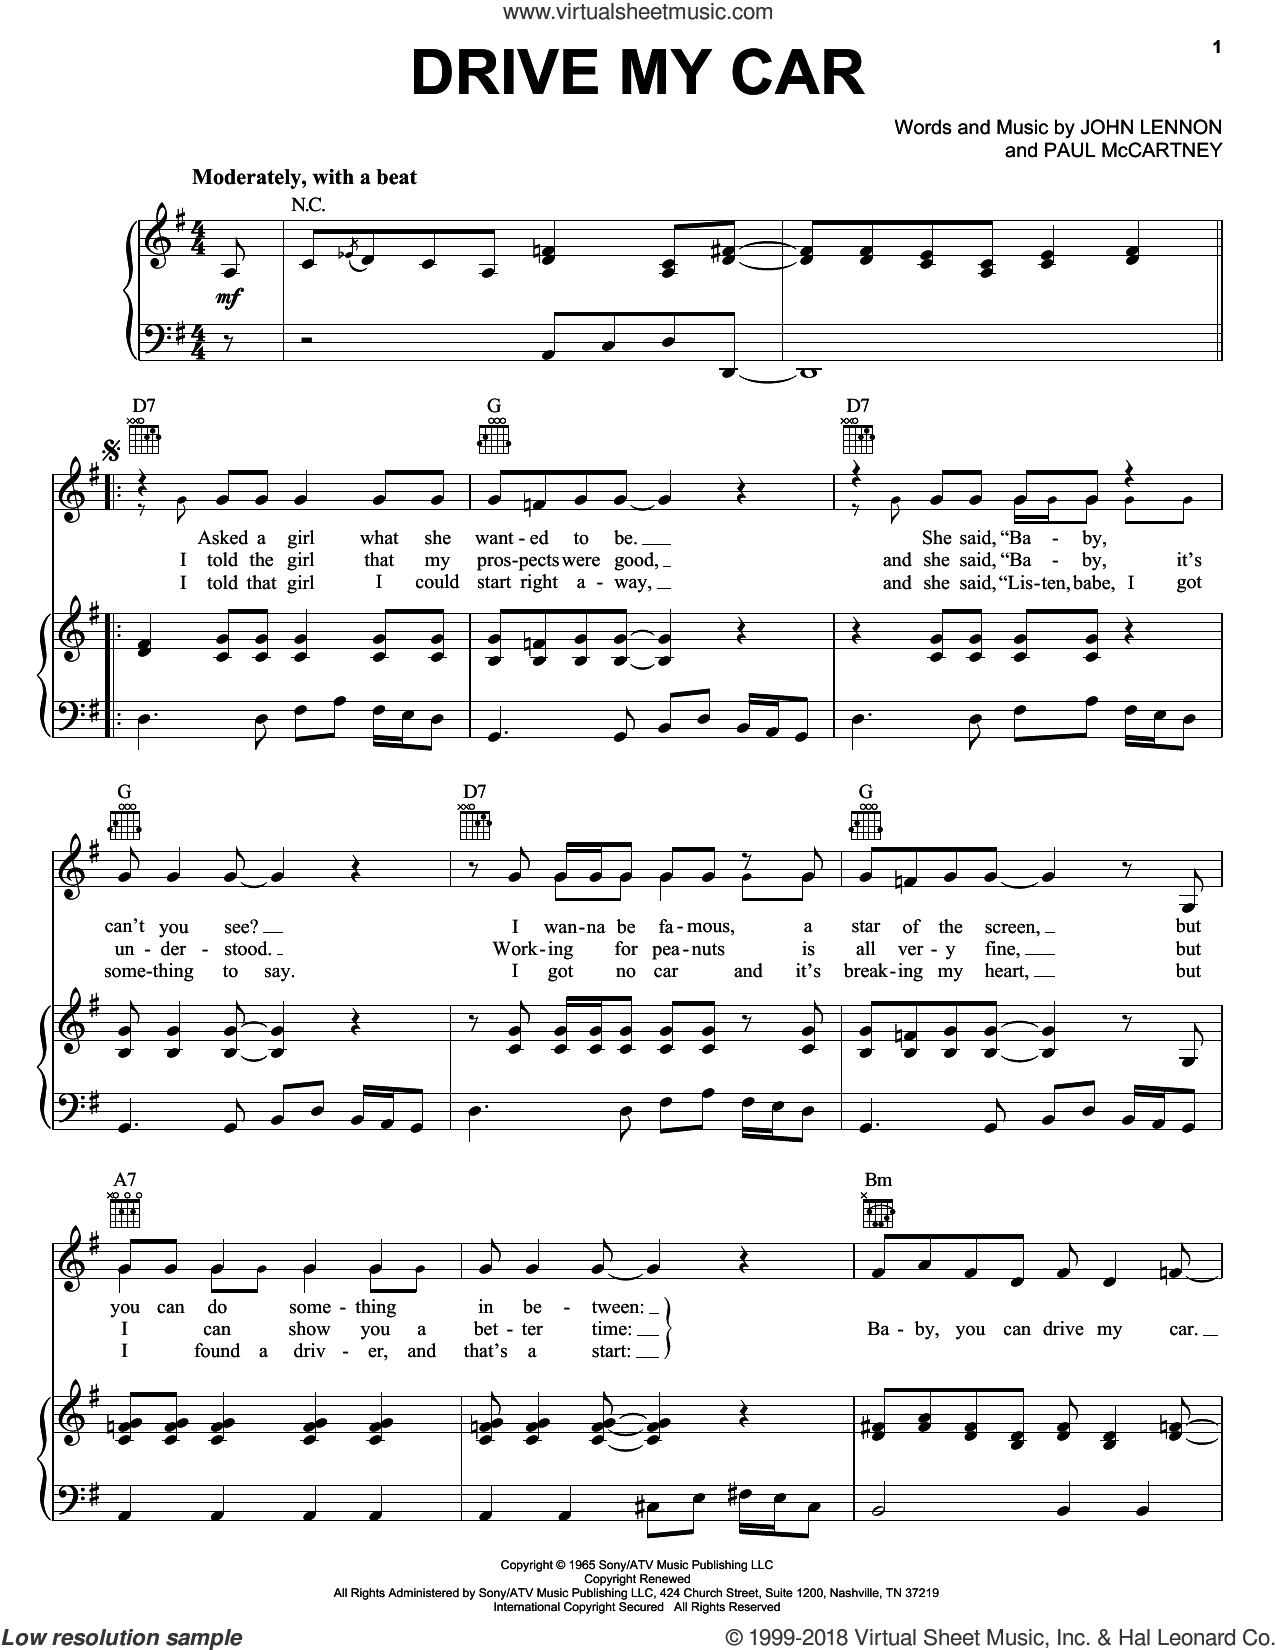 Drive My Car sheet music for voice, piano or guitar by The Beatles, John Lennon and Paul McCartney, intermediate skill level